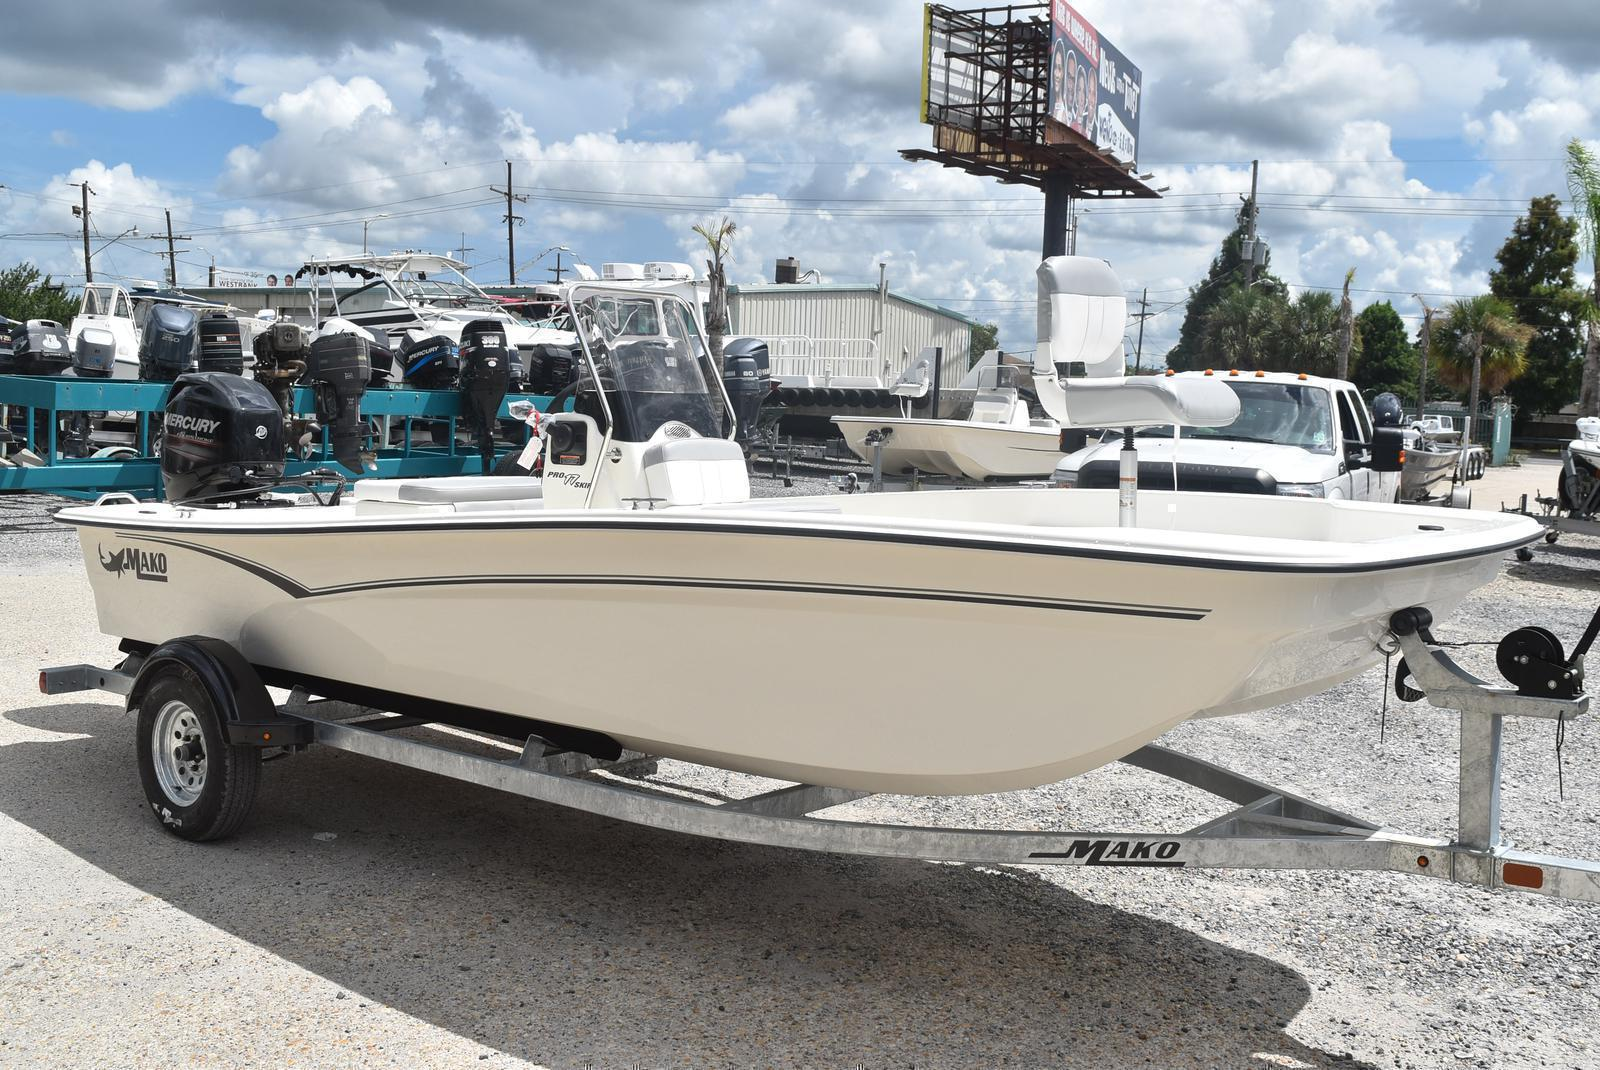 2020 Mako boat for sale, model of the boat is Pro Skiff 17, 75 ELPT & Image # 687 of 702